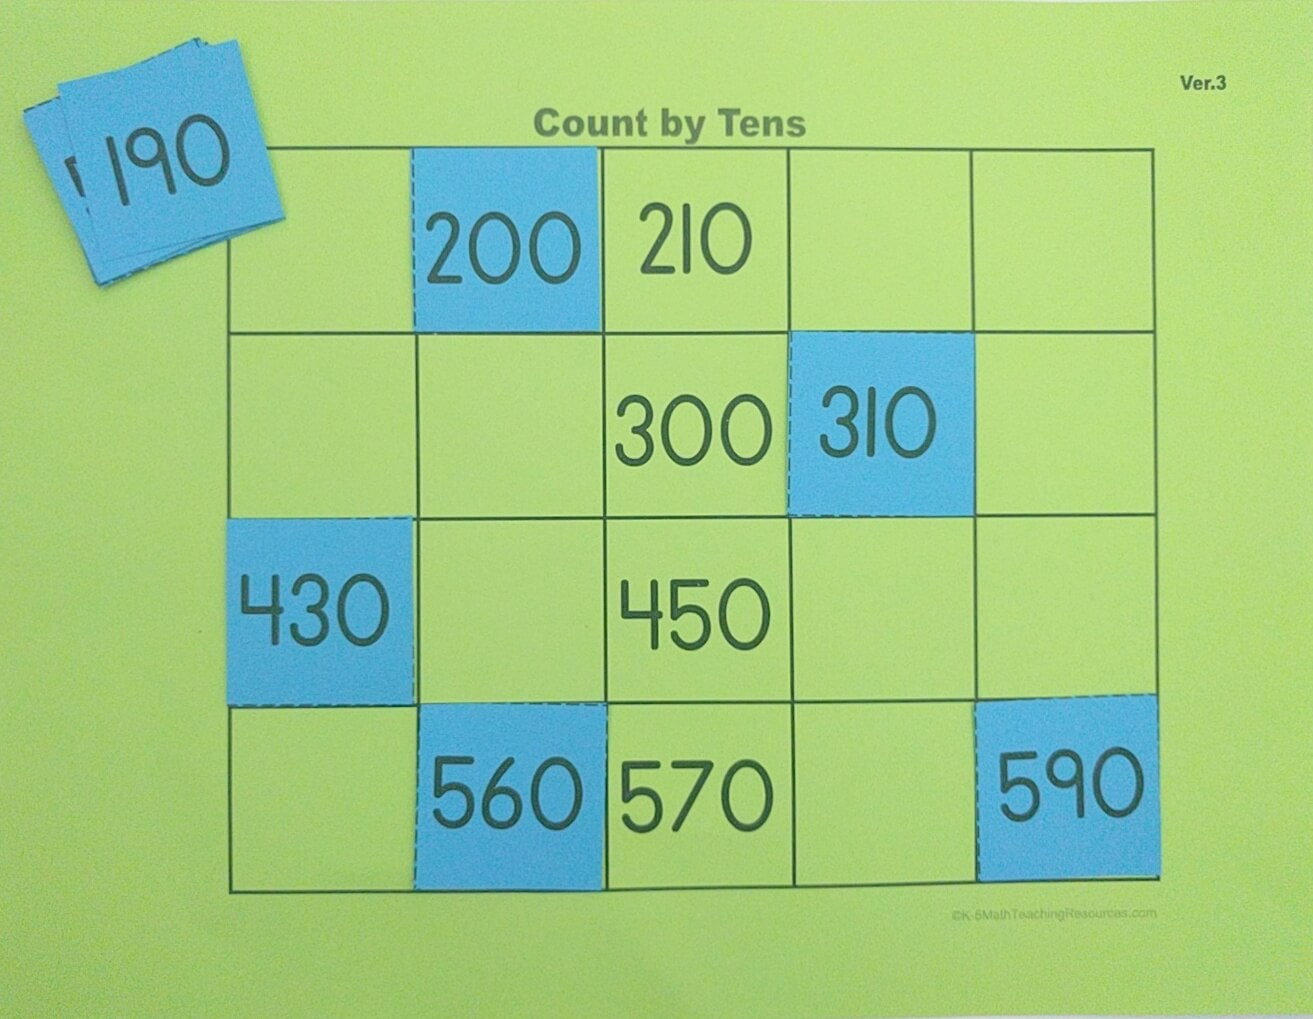 2.NBT.A.2 Count by Tens (within 1,000)